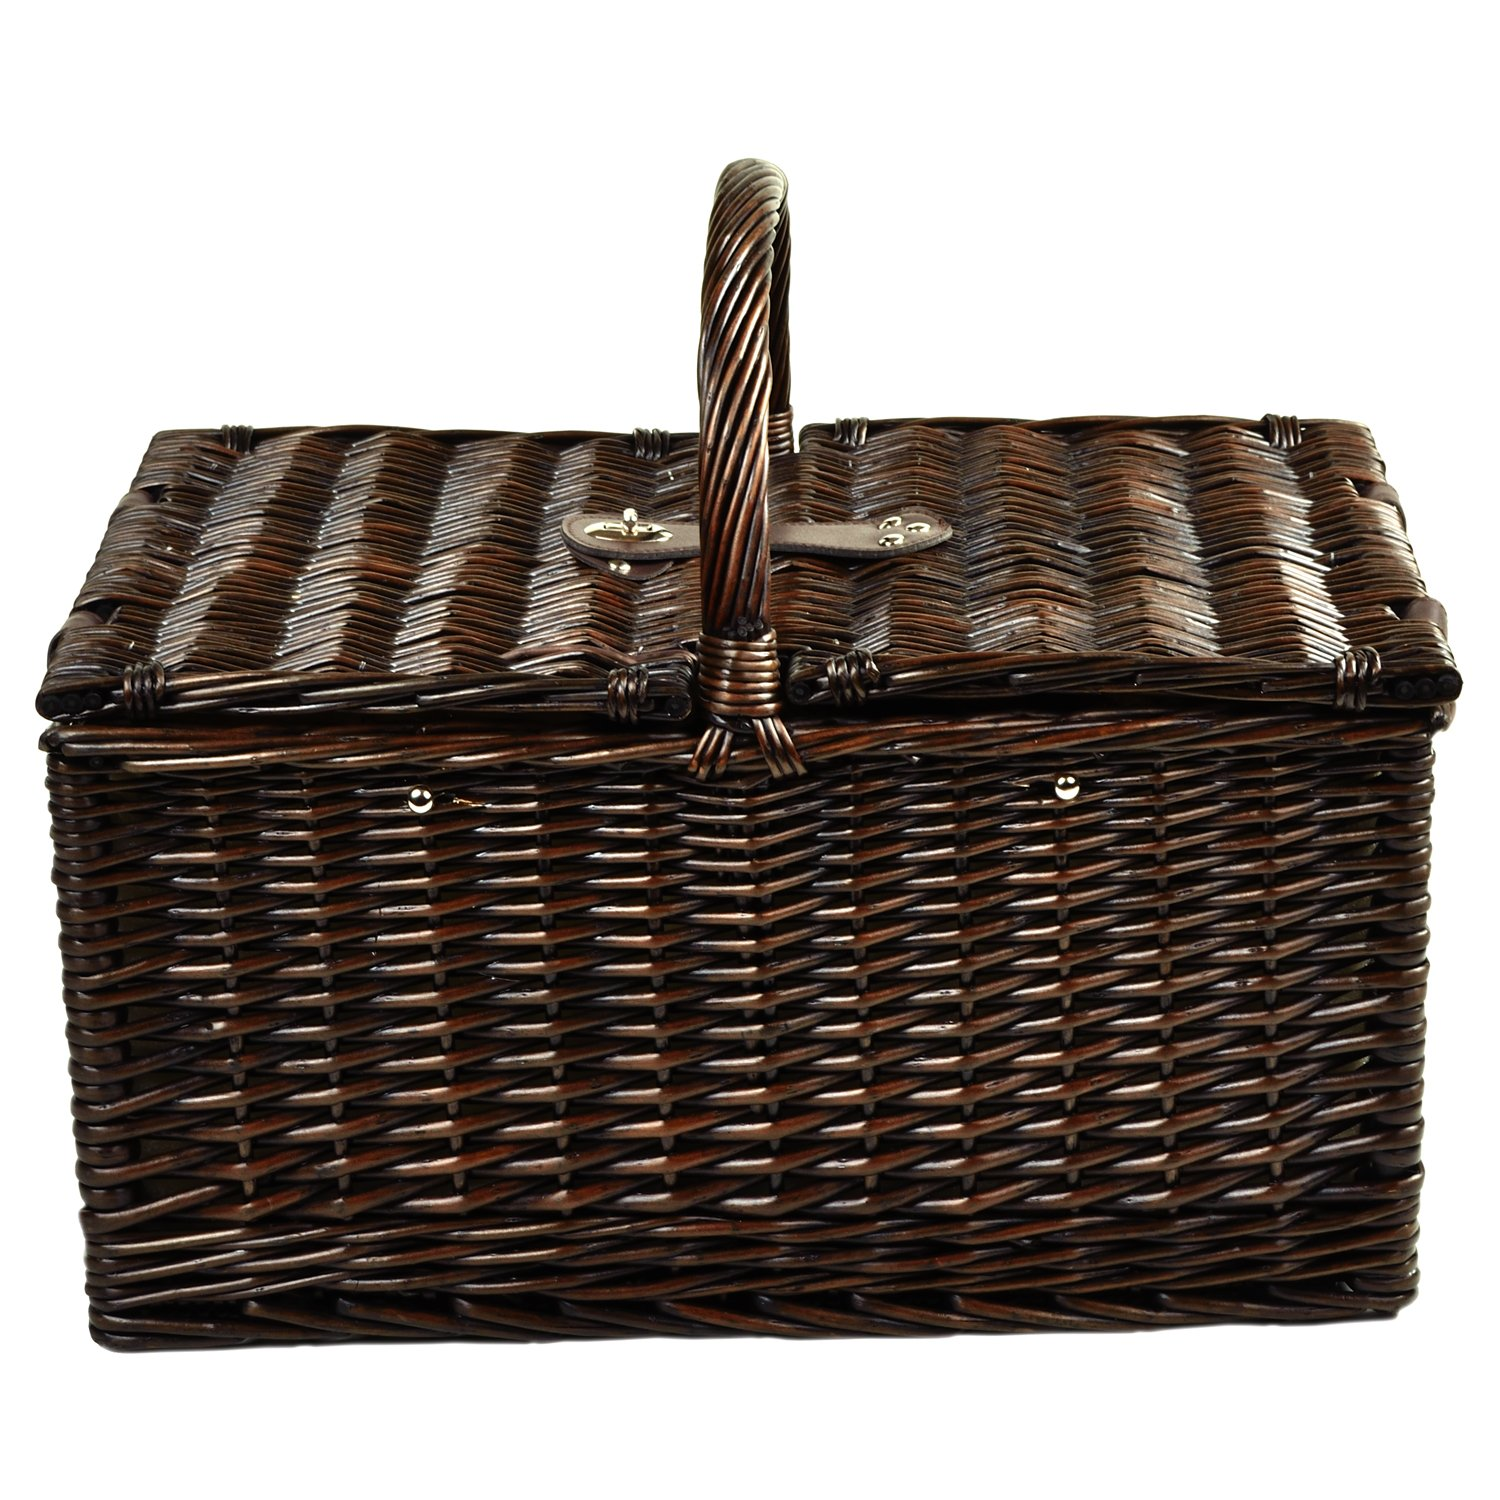 Picnic at Ascot Buckingham Willow Picnic Basket with Service for 4 and Coffee Service – Blue Stripe